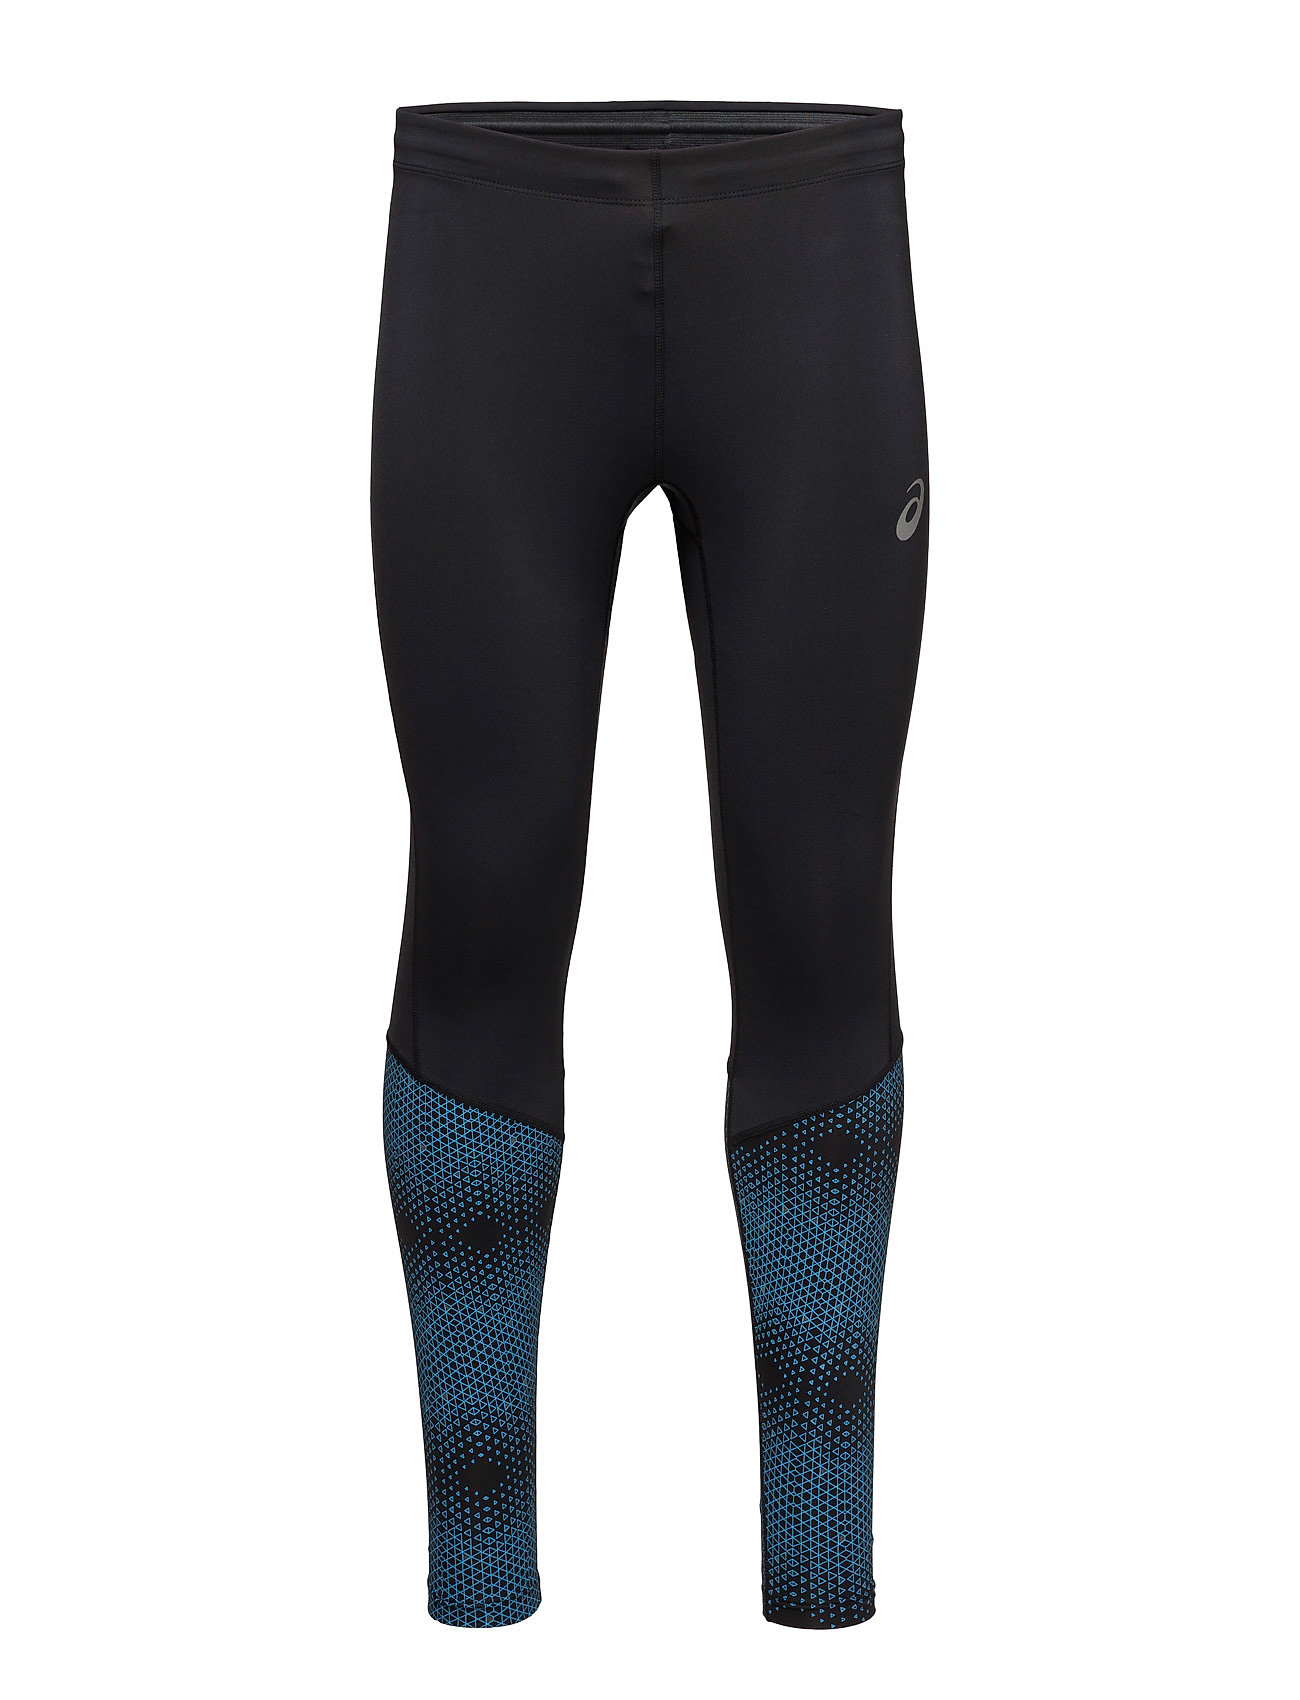 Race Tight Asics Løbe tights til Herrer i